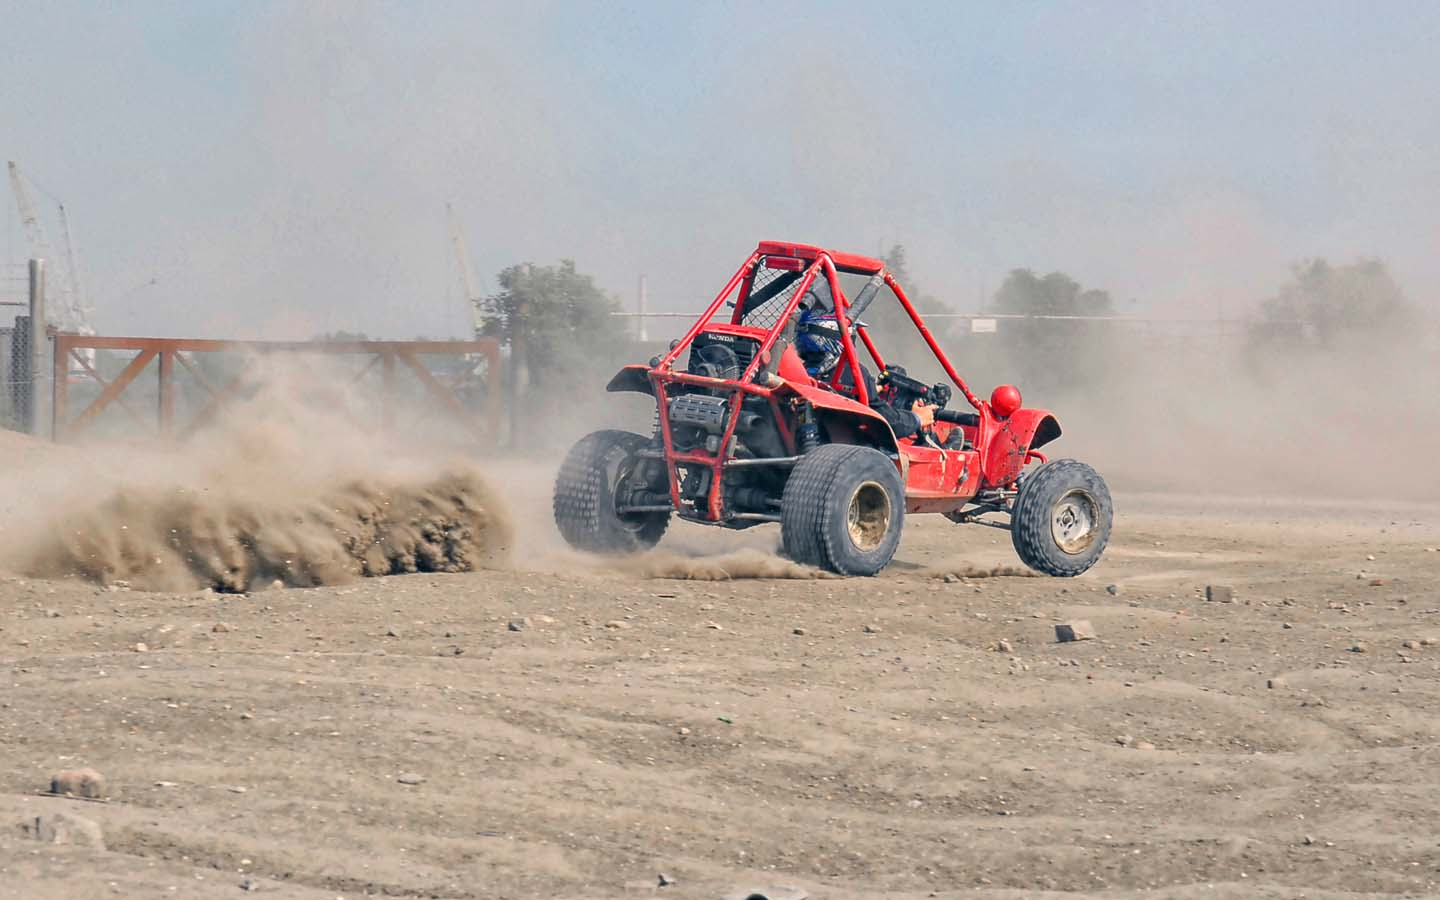 Experience the thrill of a dune buggy as one of the best motorsport activities in the UAE.